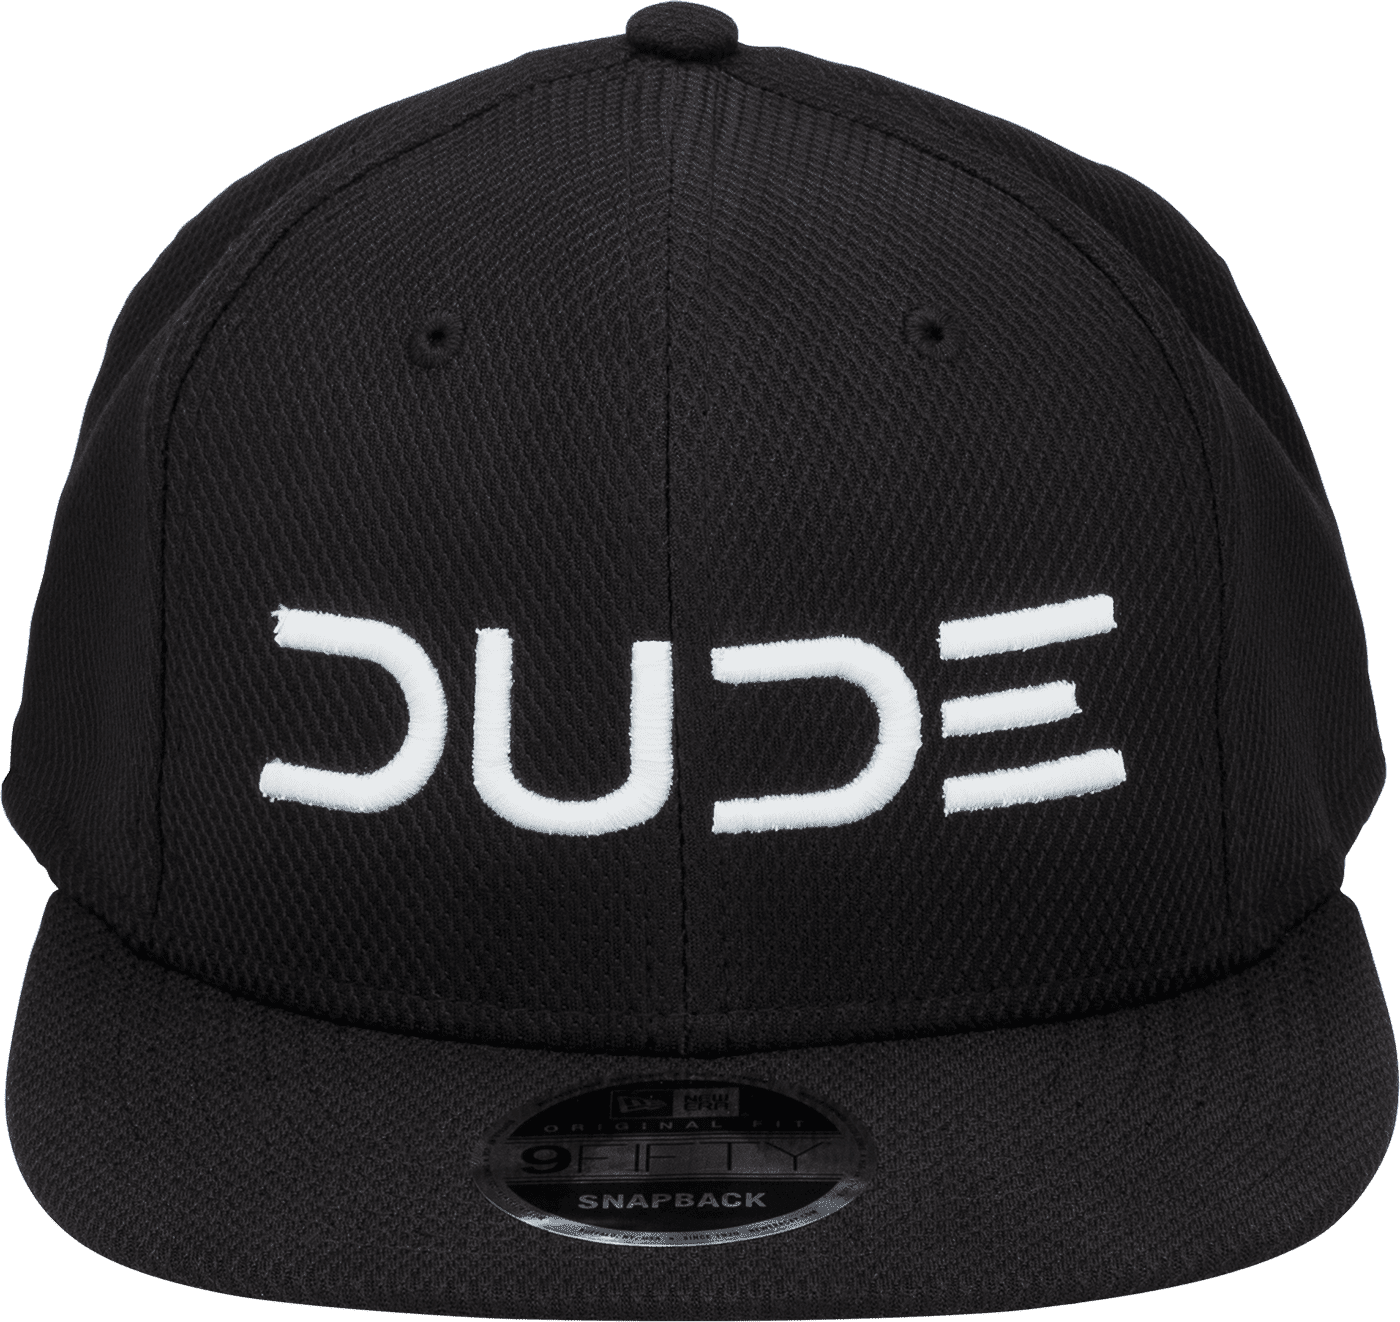 Black & White, Mesh Snapback - DudeProducts